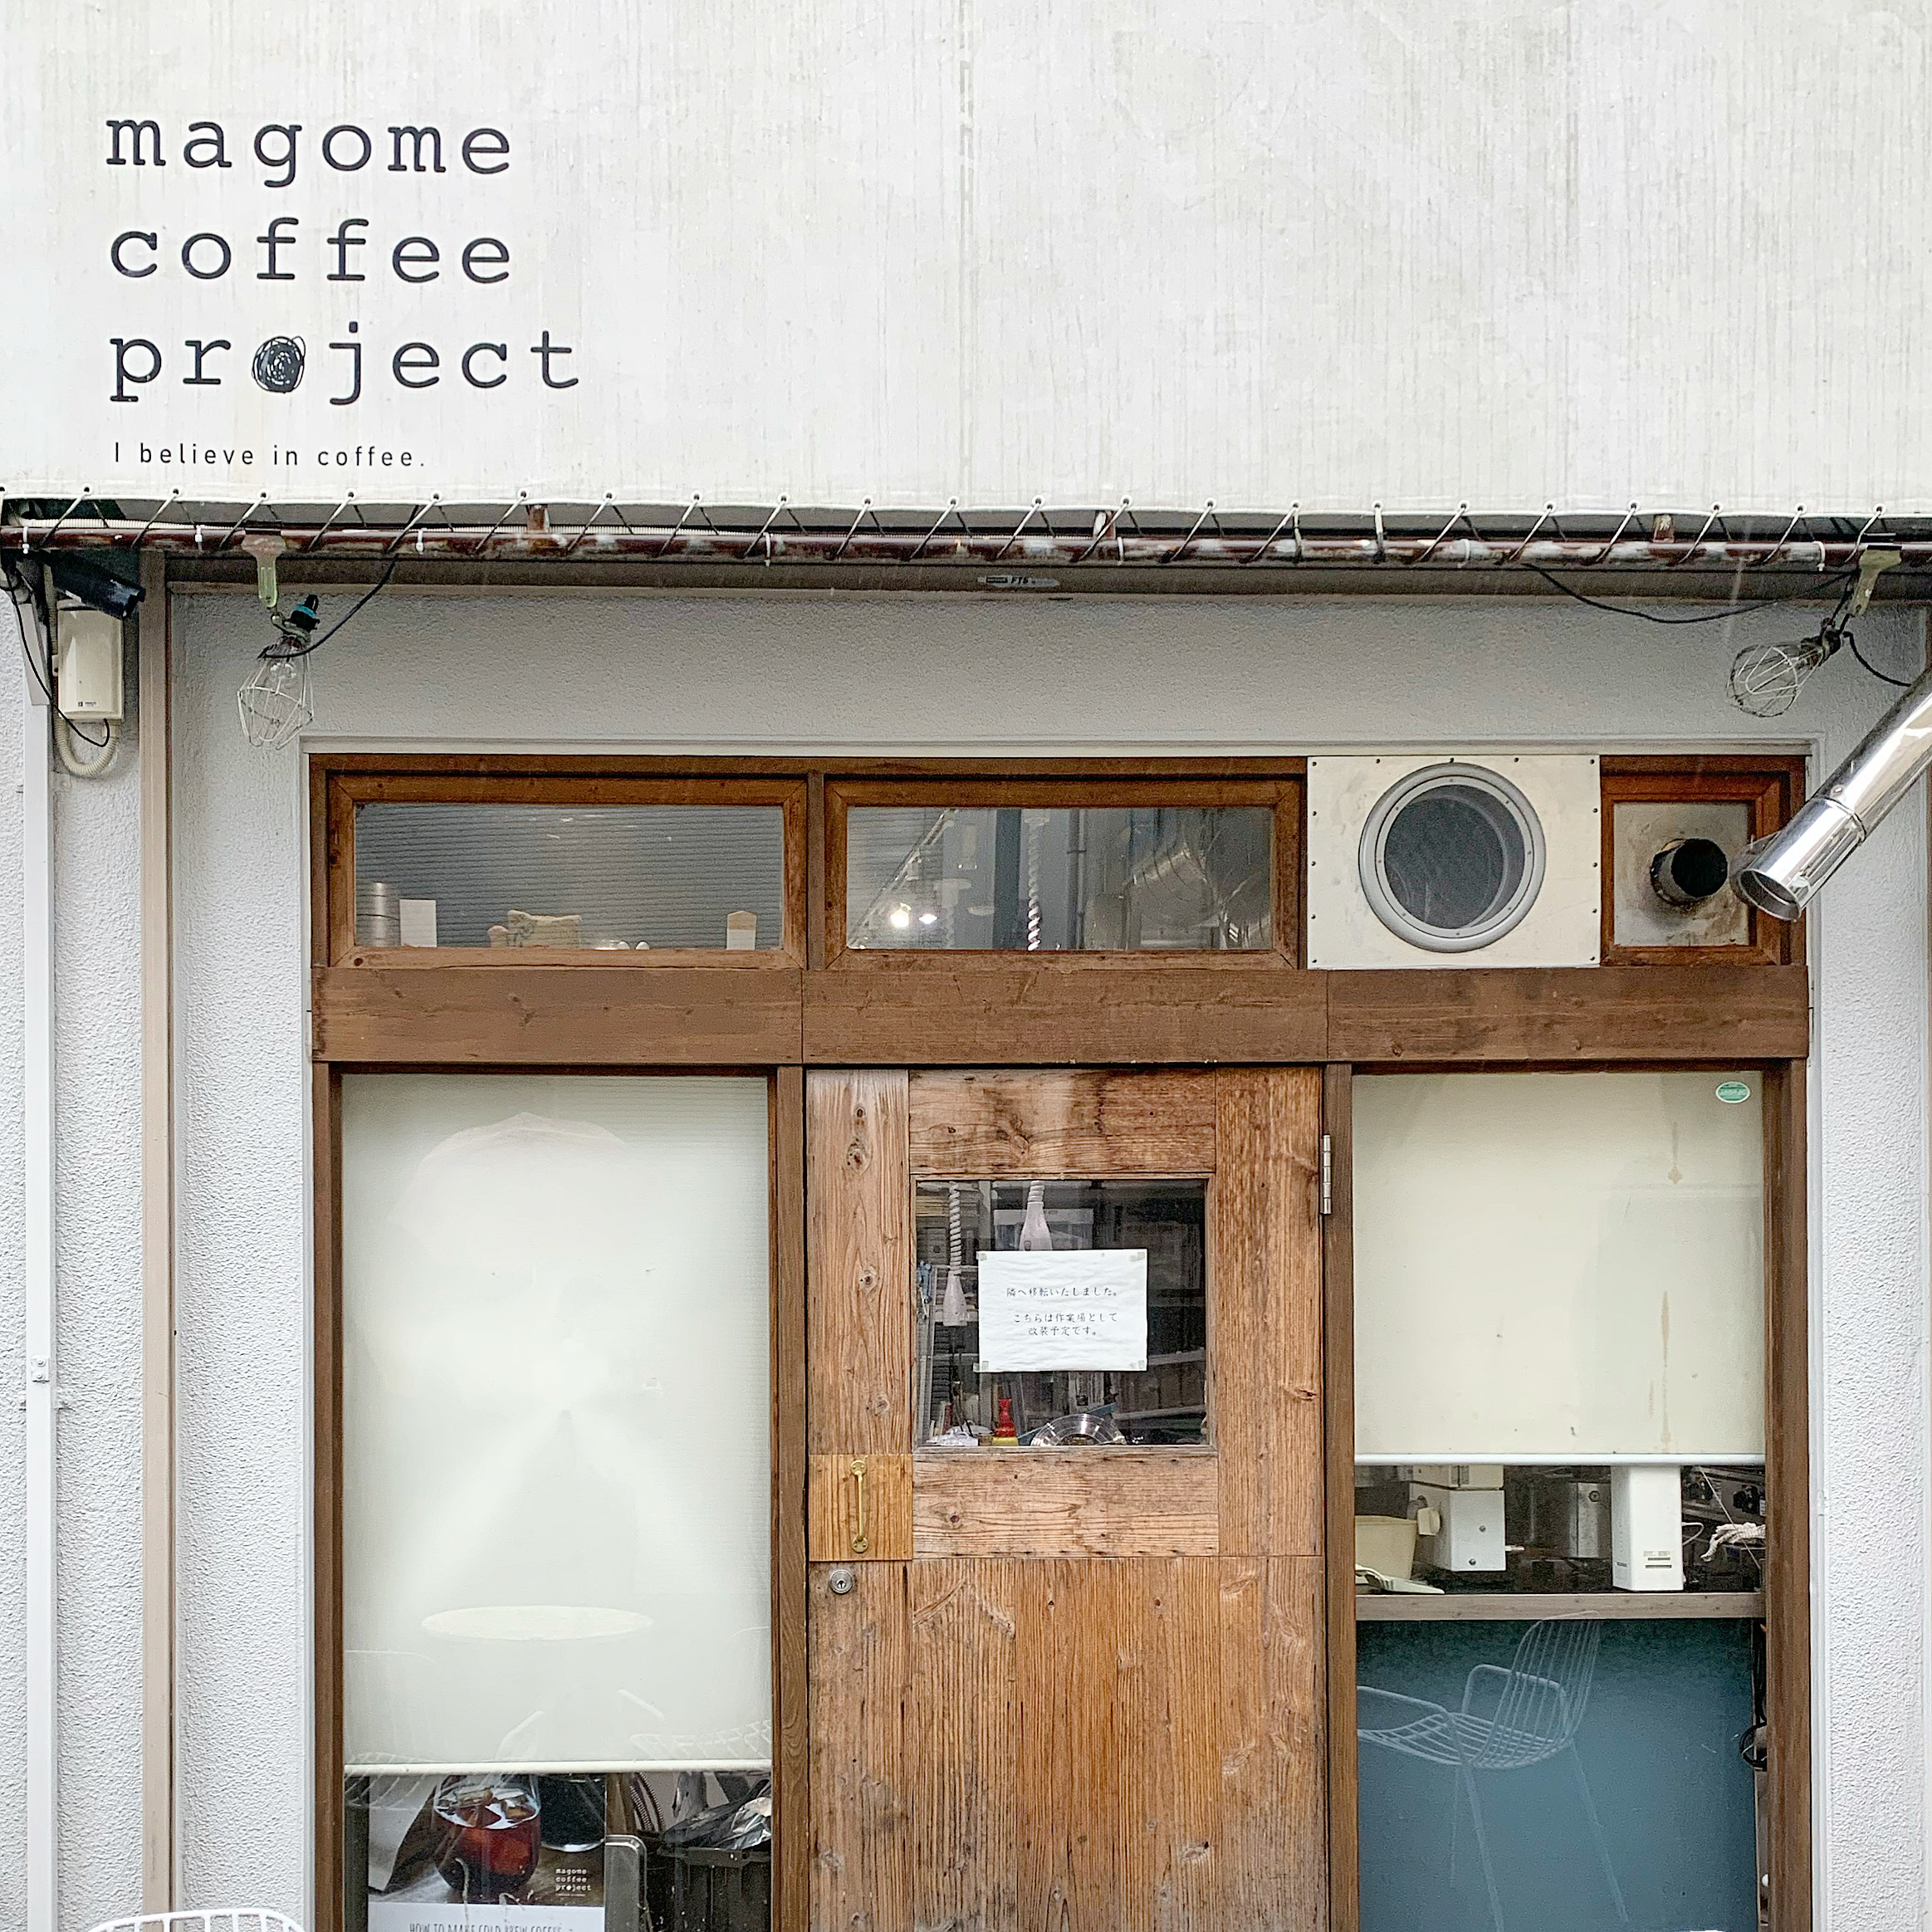 【千葉カフェ】magome coffee project❤︎_1_1